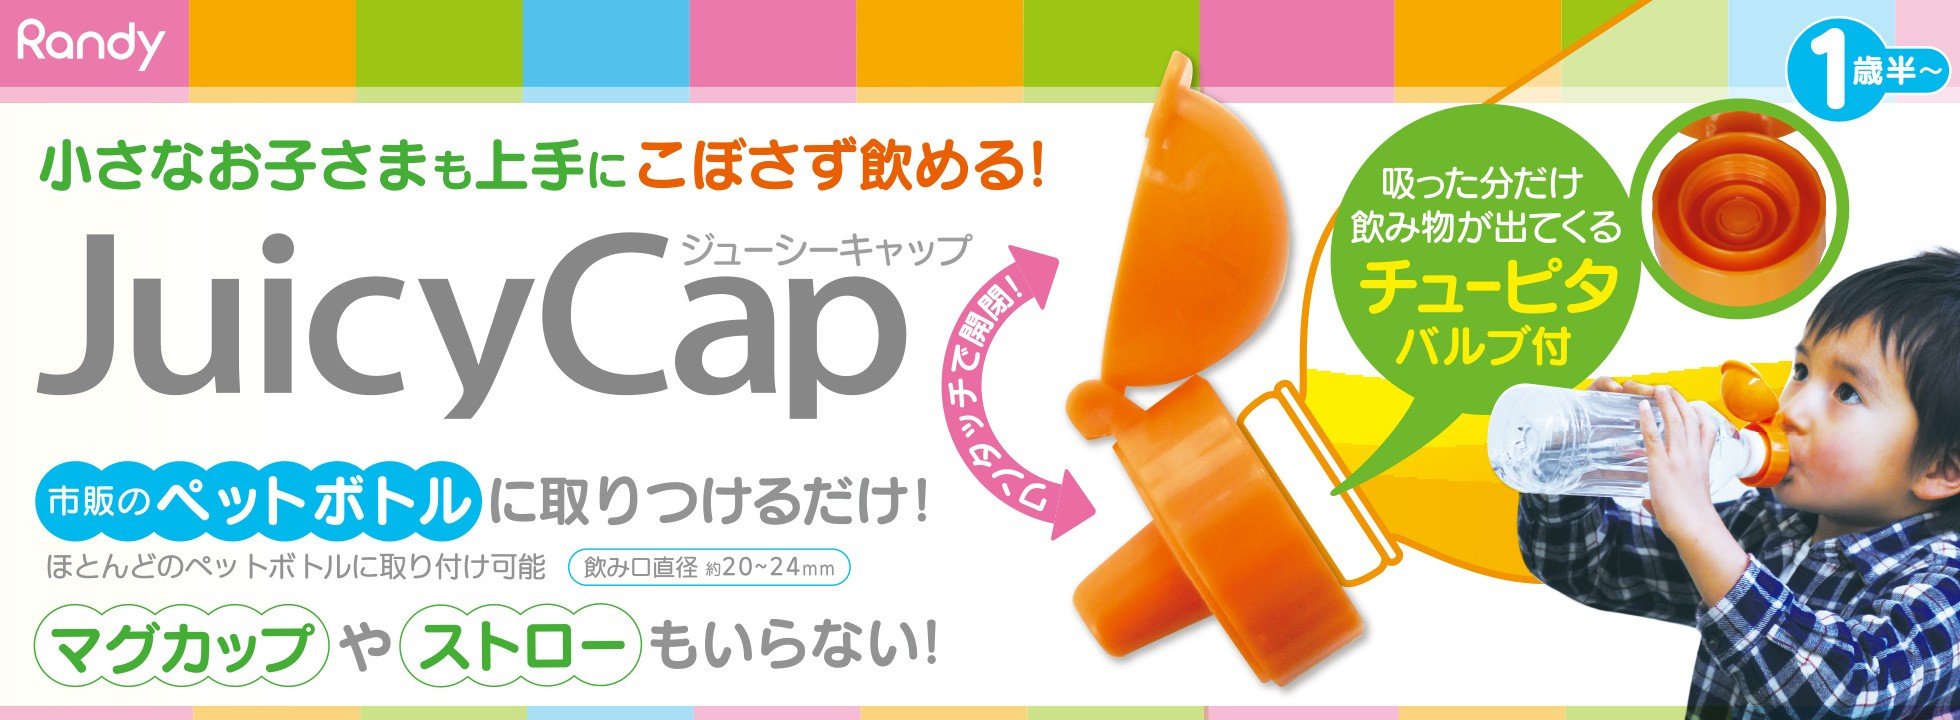 Juicy Cap�i�W���[�V�[�L���b�v�j